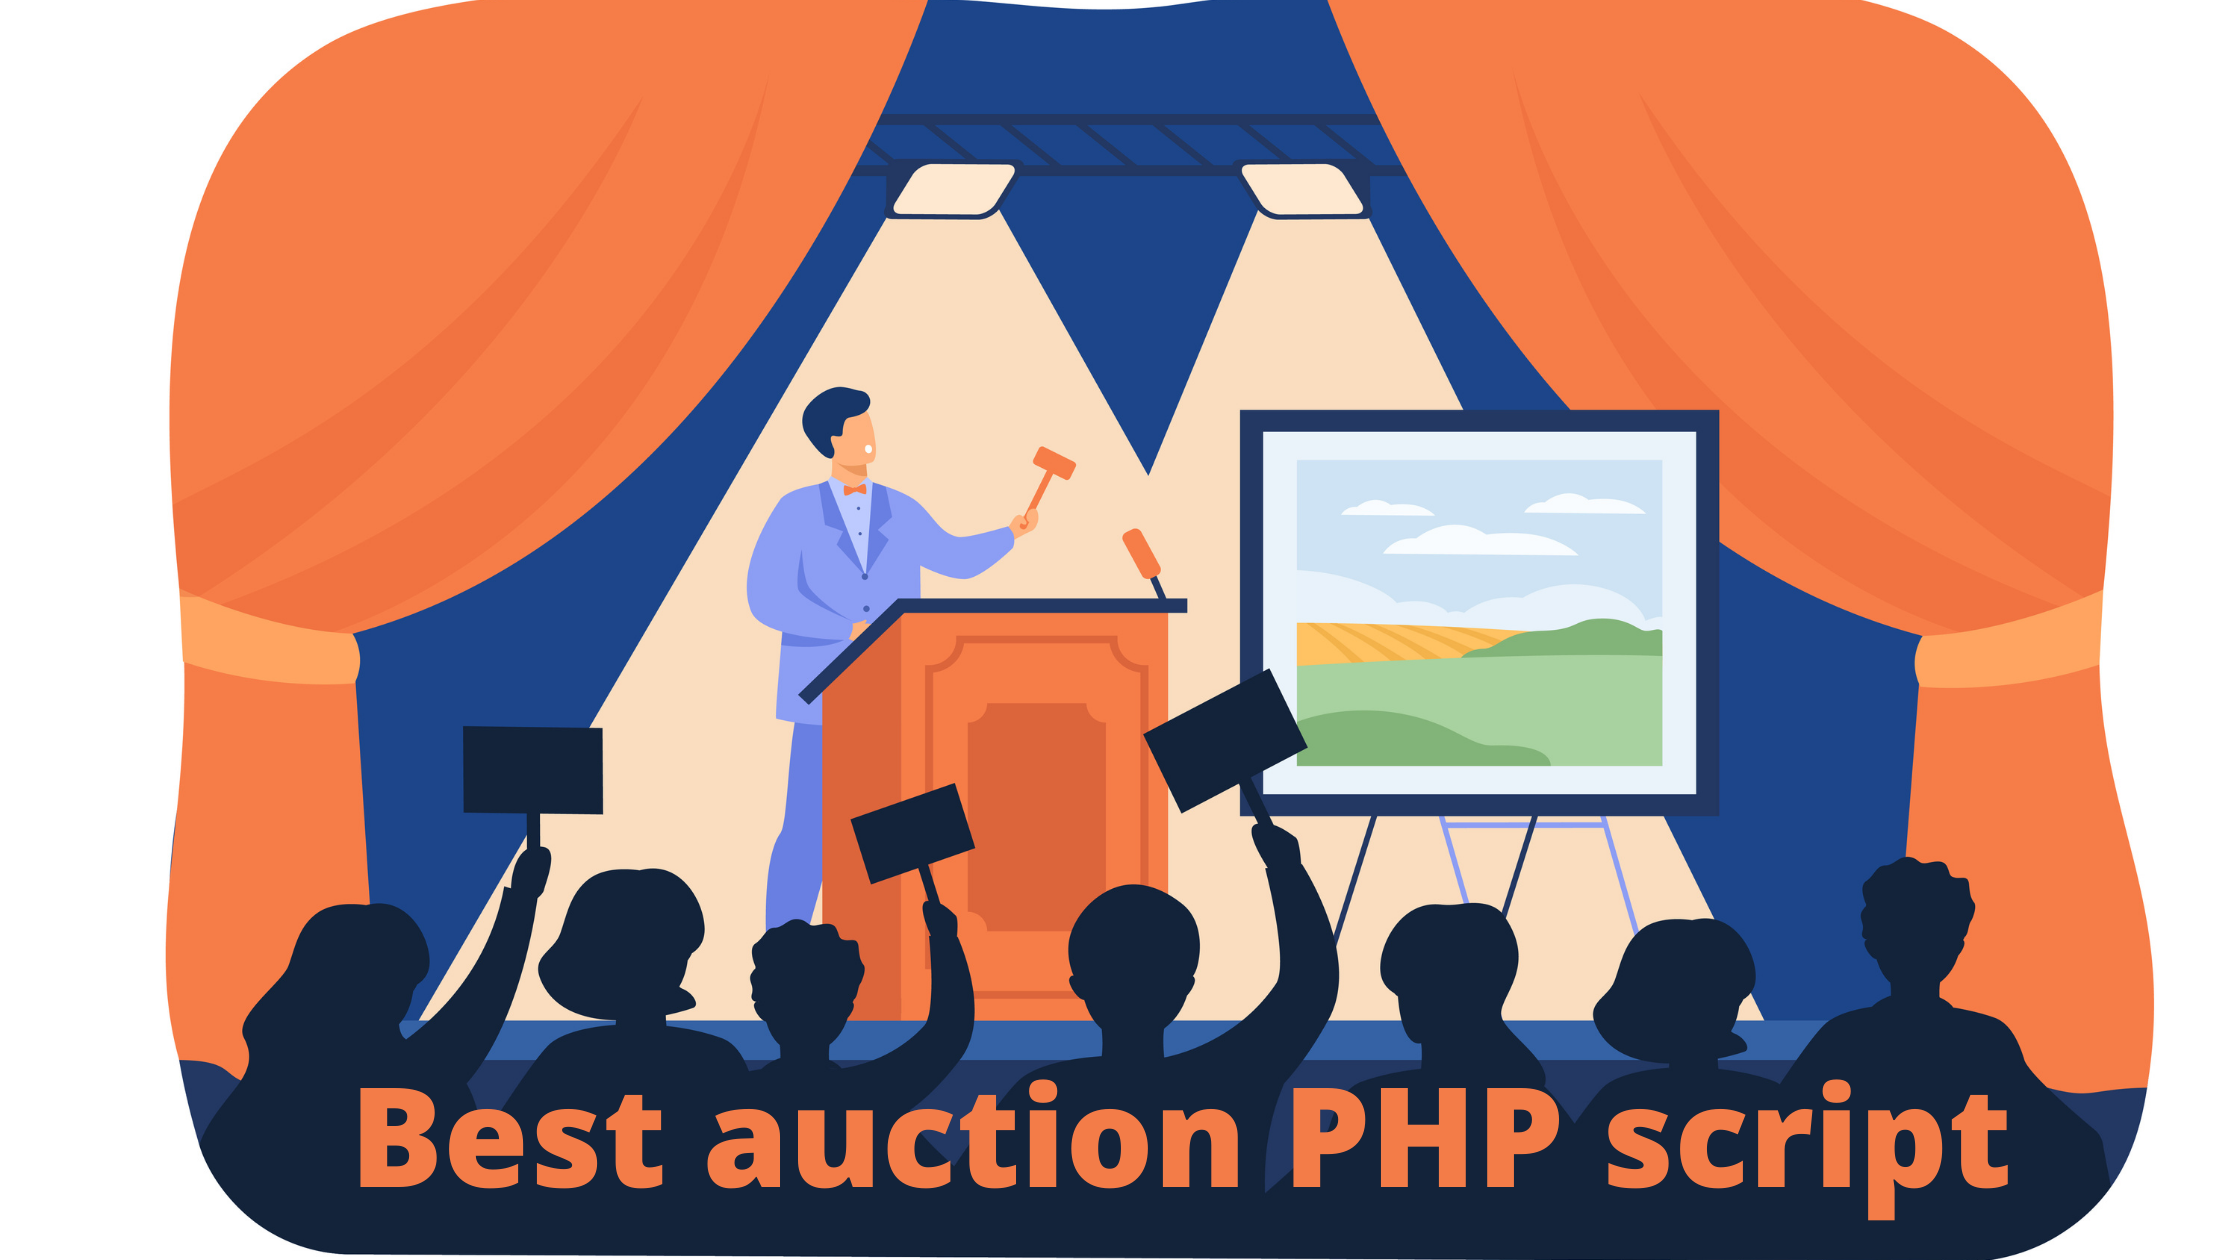 Best auction PHP script to build highly profitable online auction sites